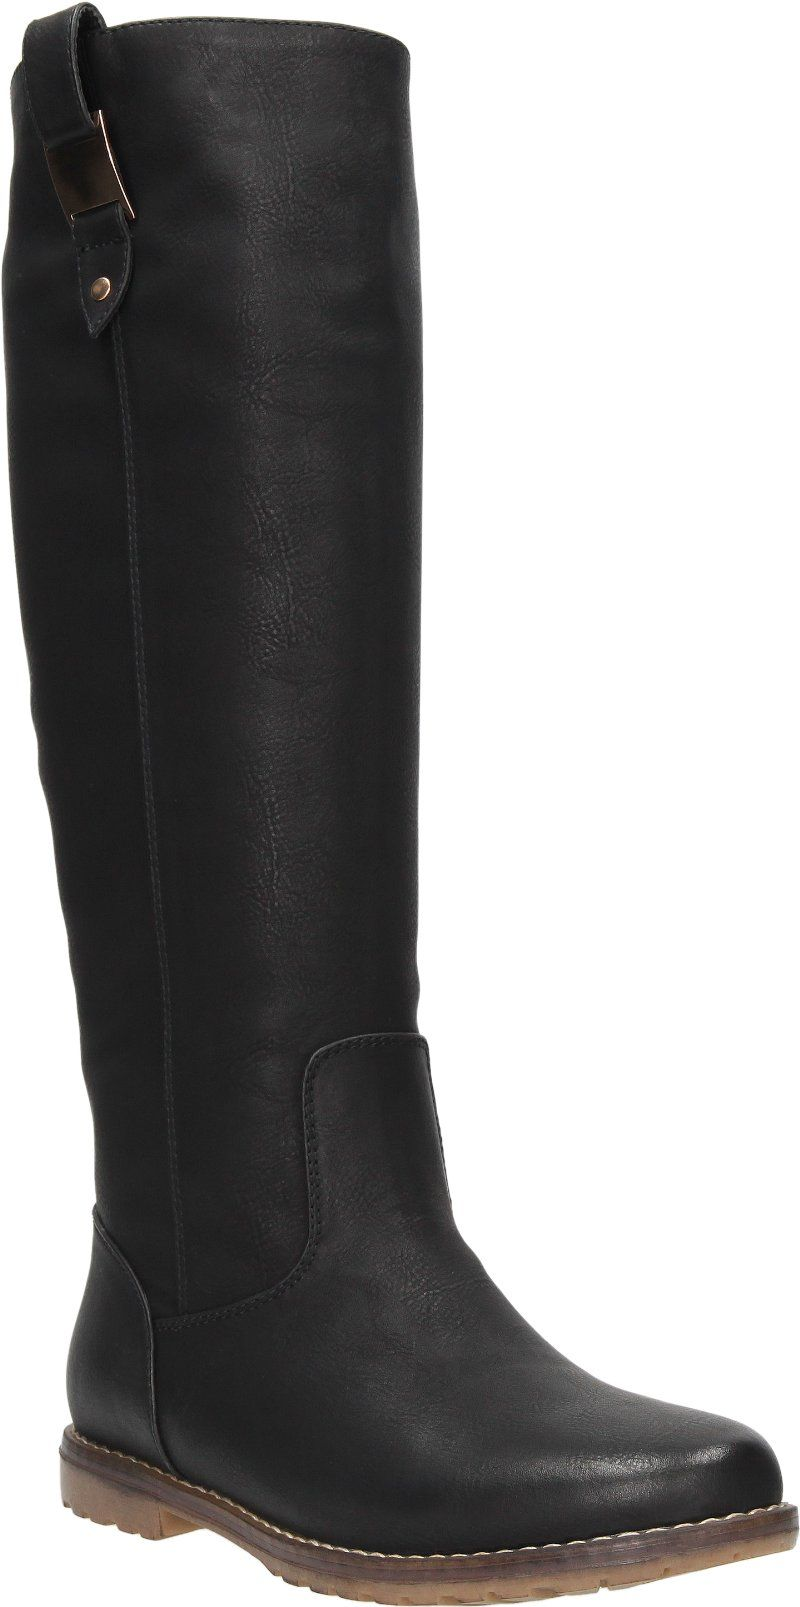 Pin By Meg On Ccc Kozaki Riding Boots Boots Shoes